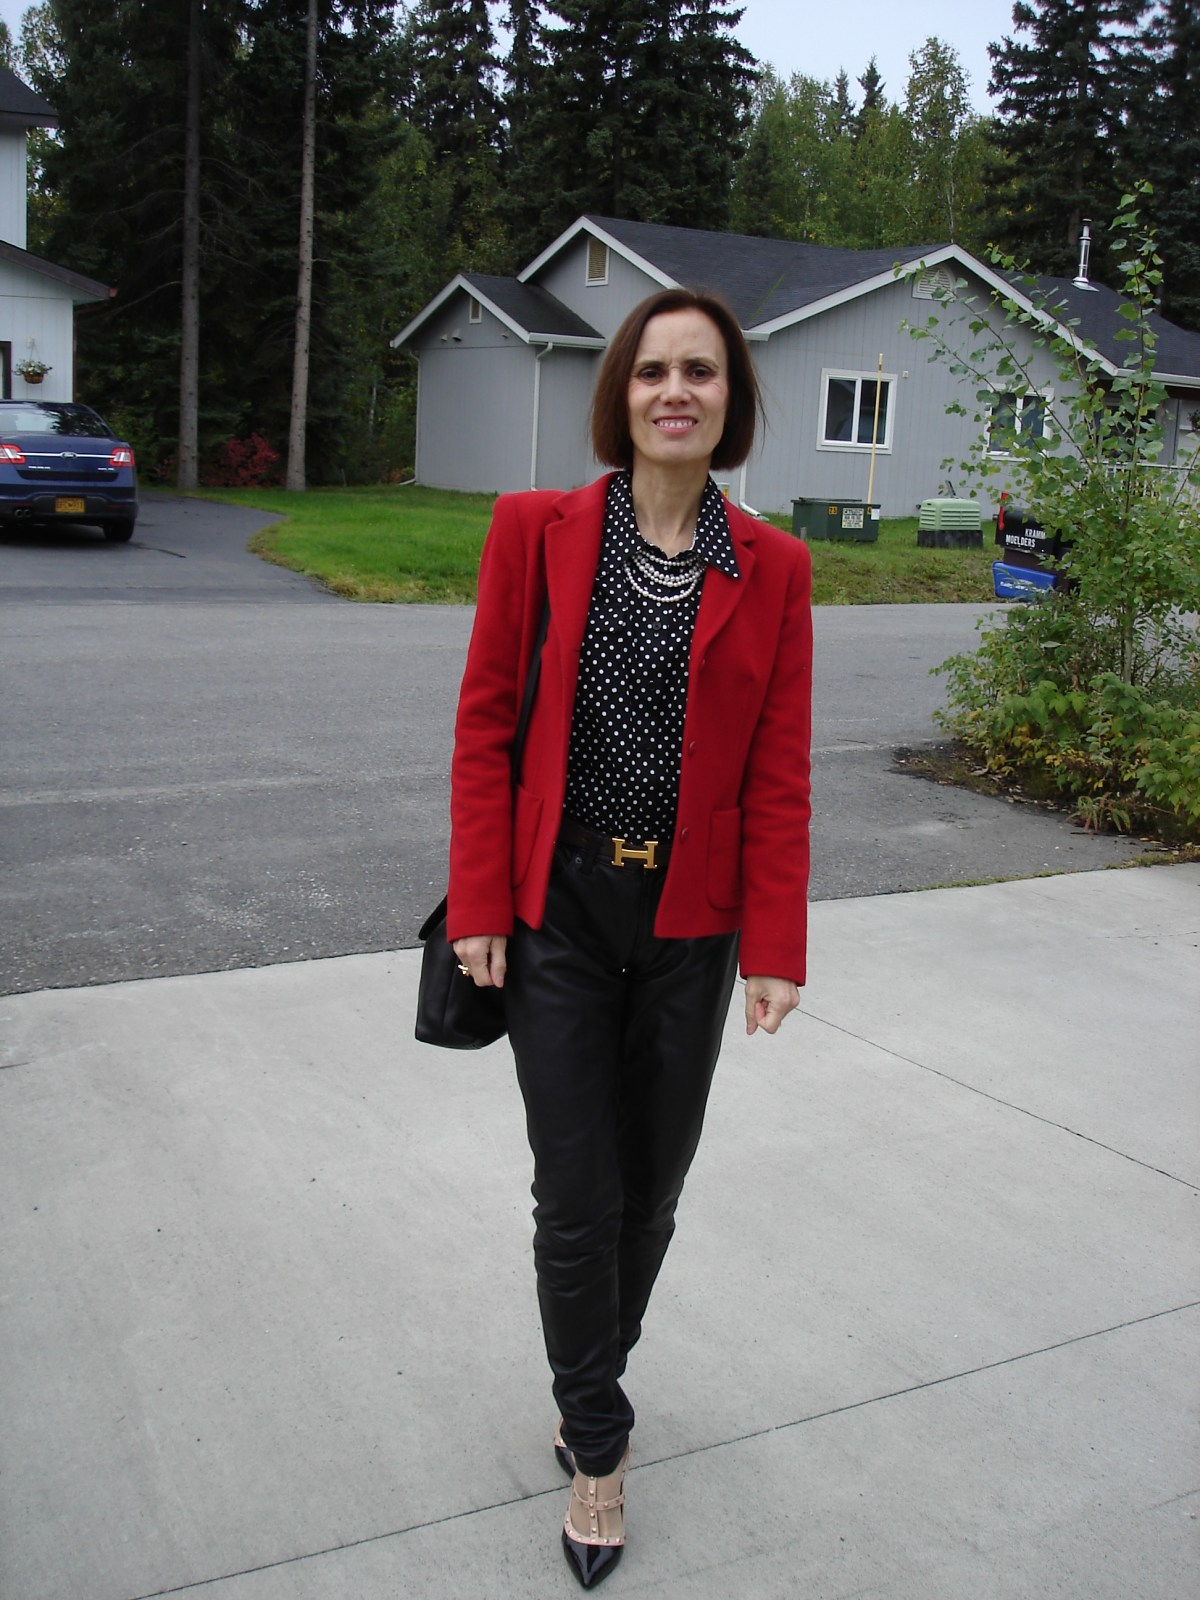 fashion blogger styling fall's trend of leather trousers in red, white black business casual way